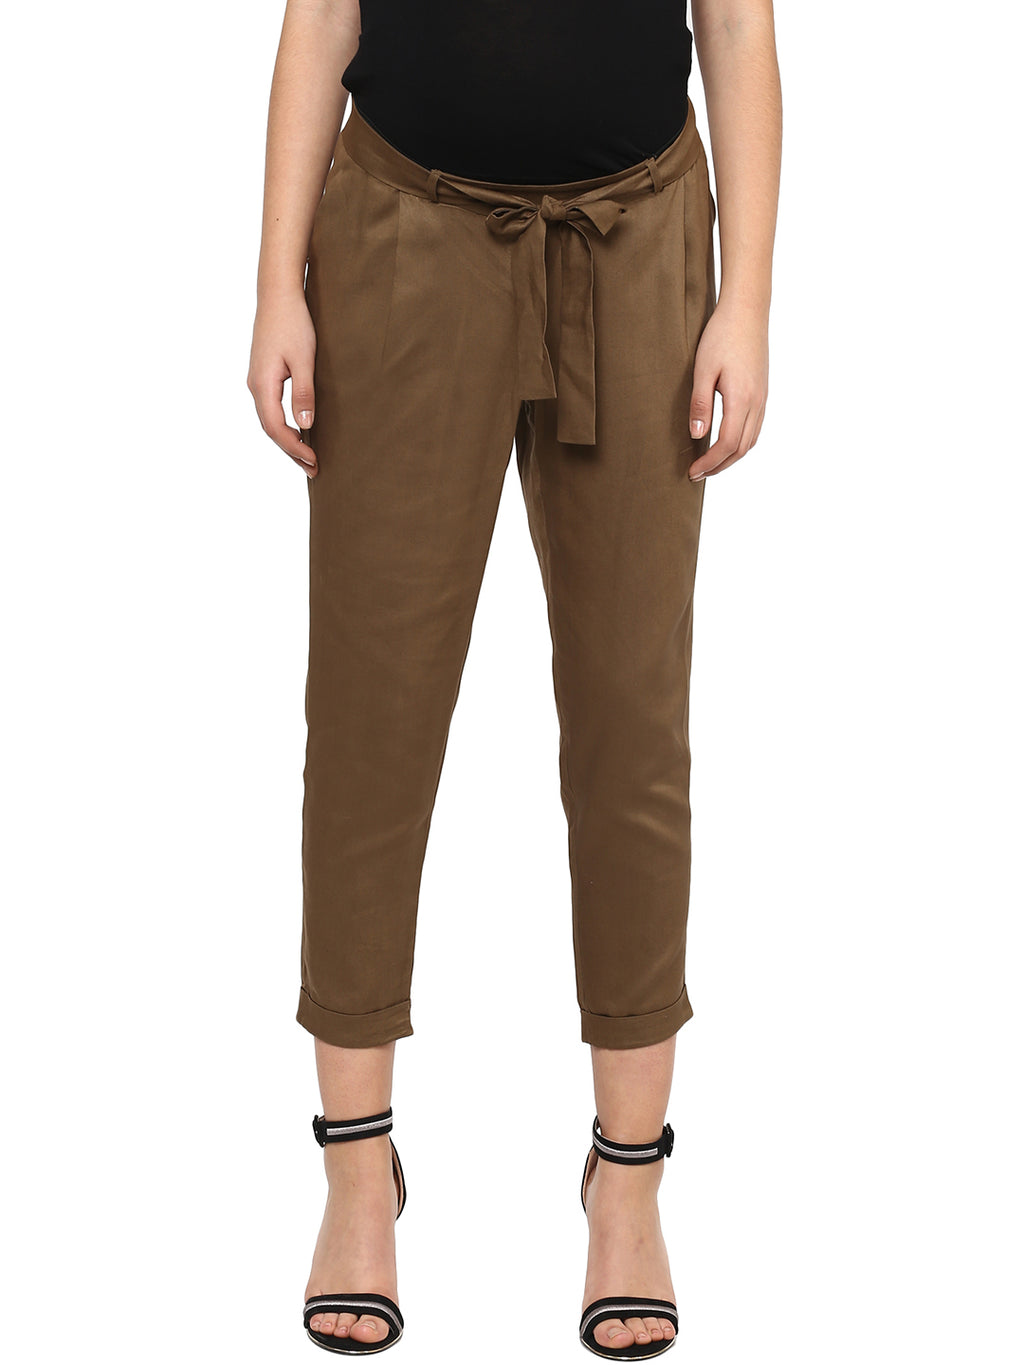 Solid Khaki Green Pant - MomSoon Maternity and Nursing Wear